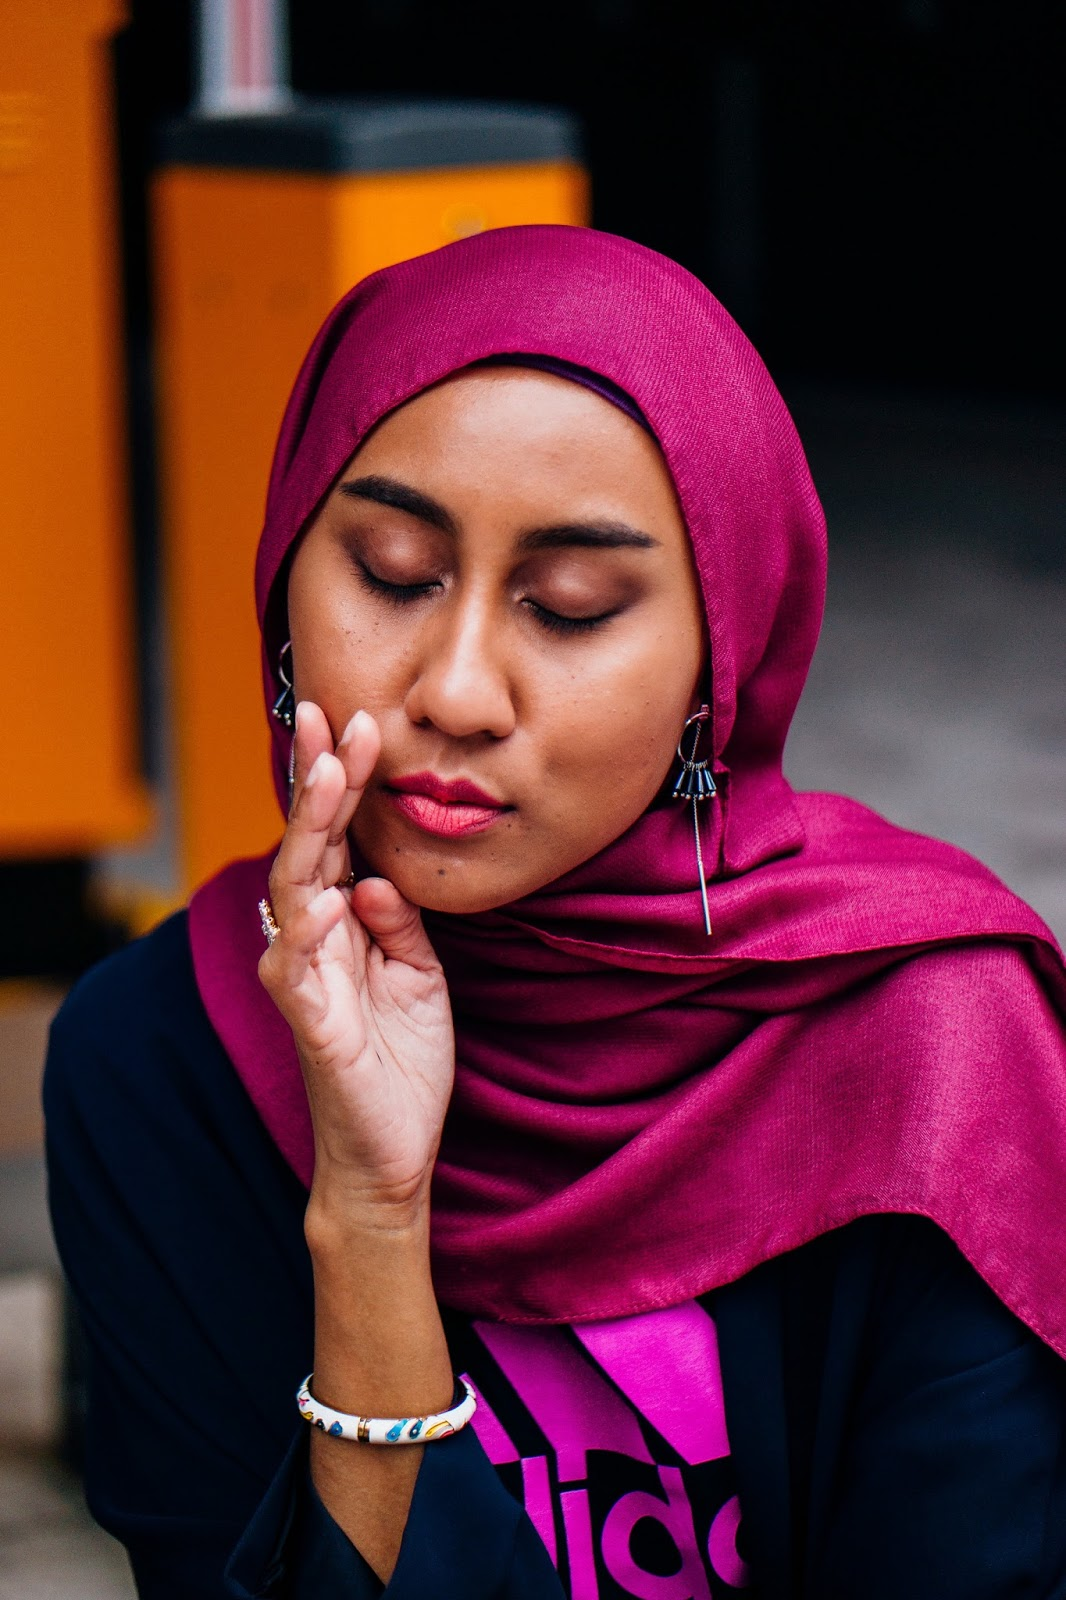 How to wear hijab with earrings